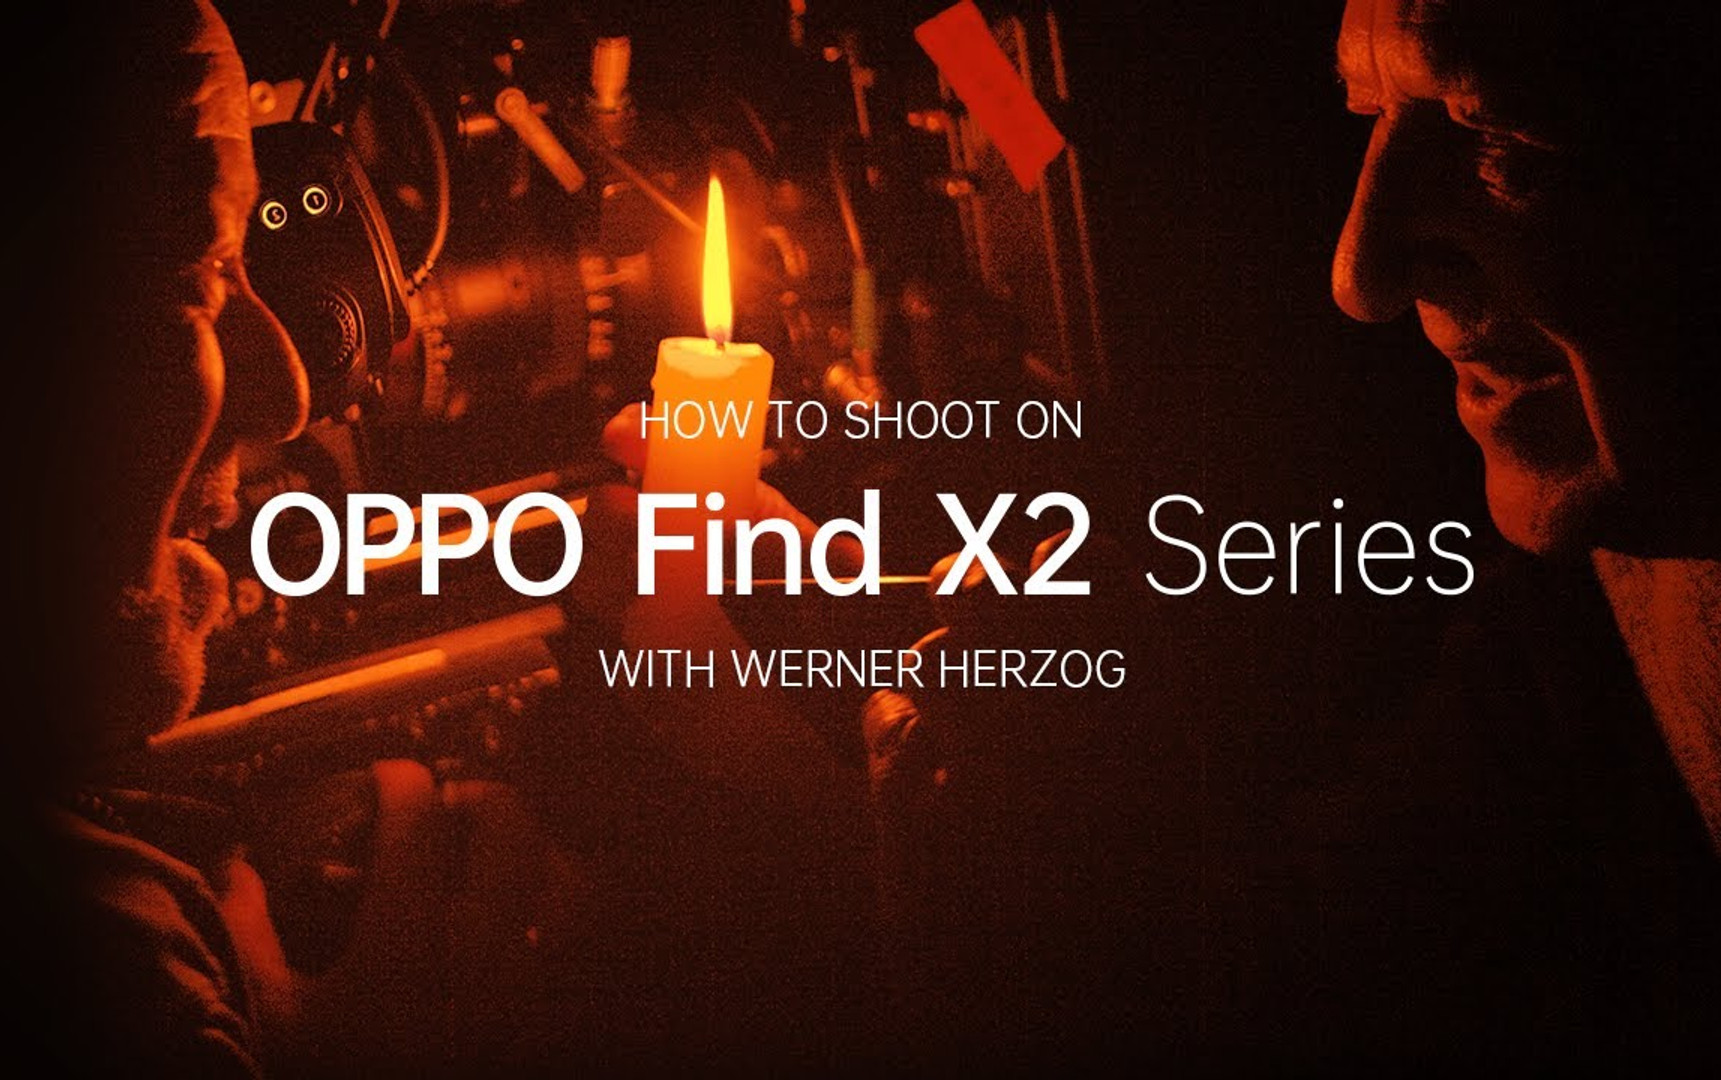 OPPO Find X2 - How to with Werner Herzog